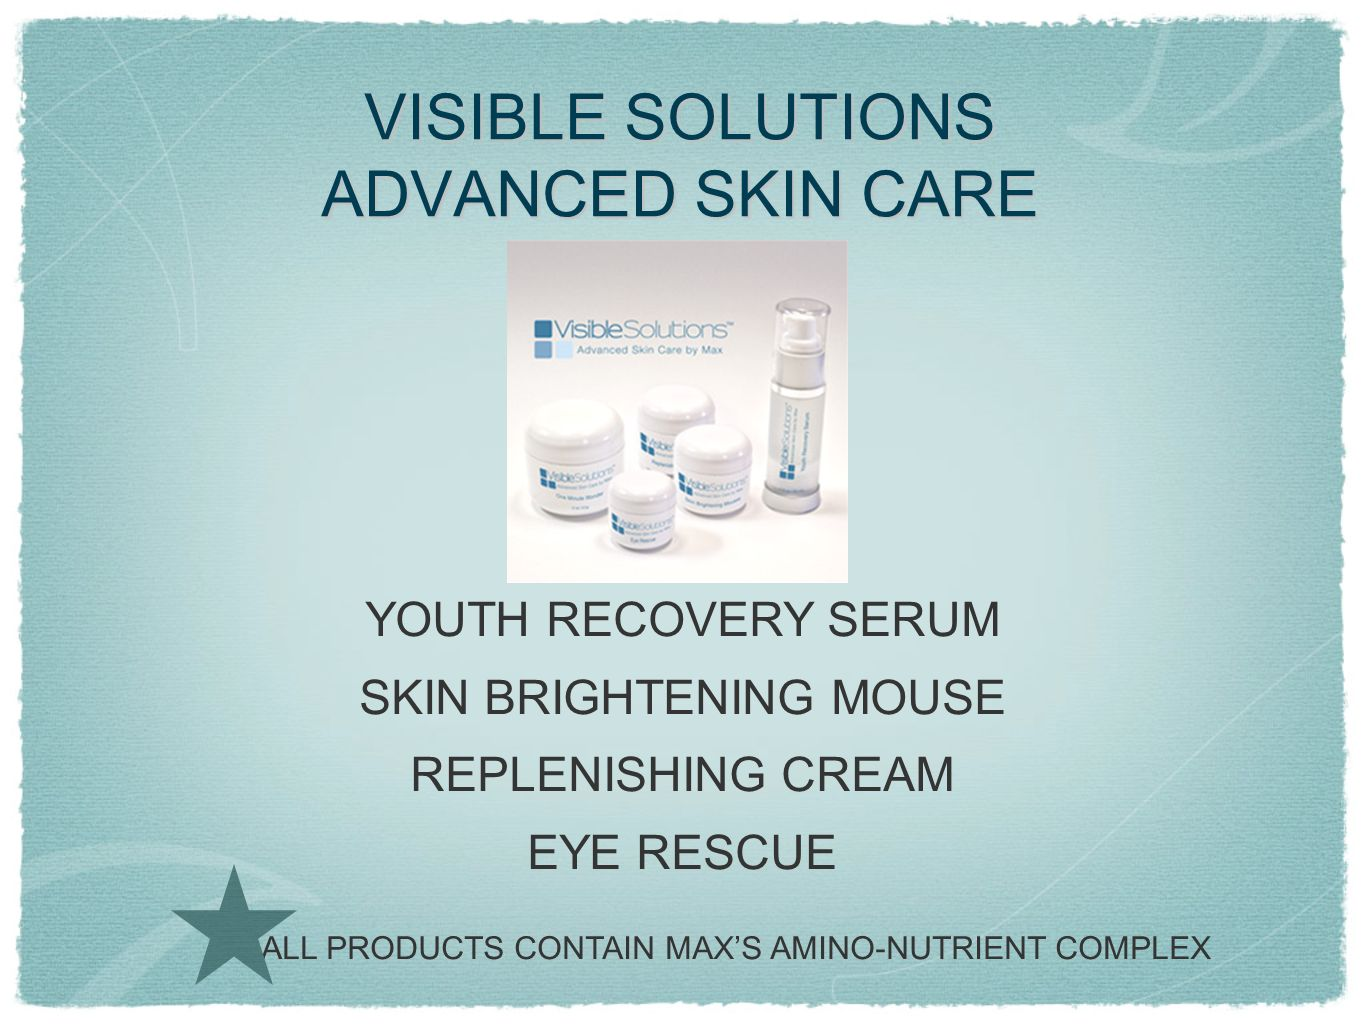 VISIBLE SOLUTIONS ADVANCED SKIN CARE